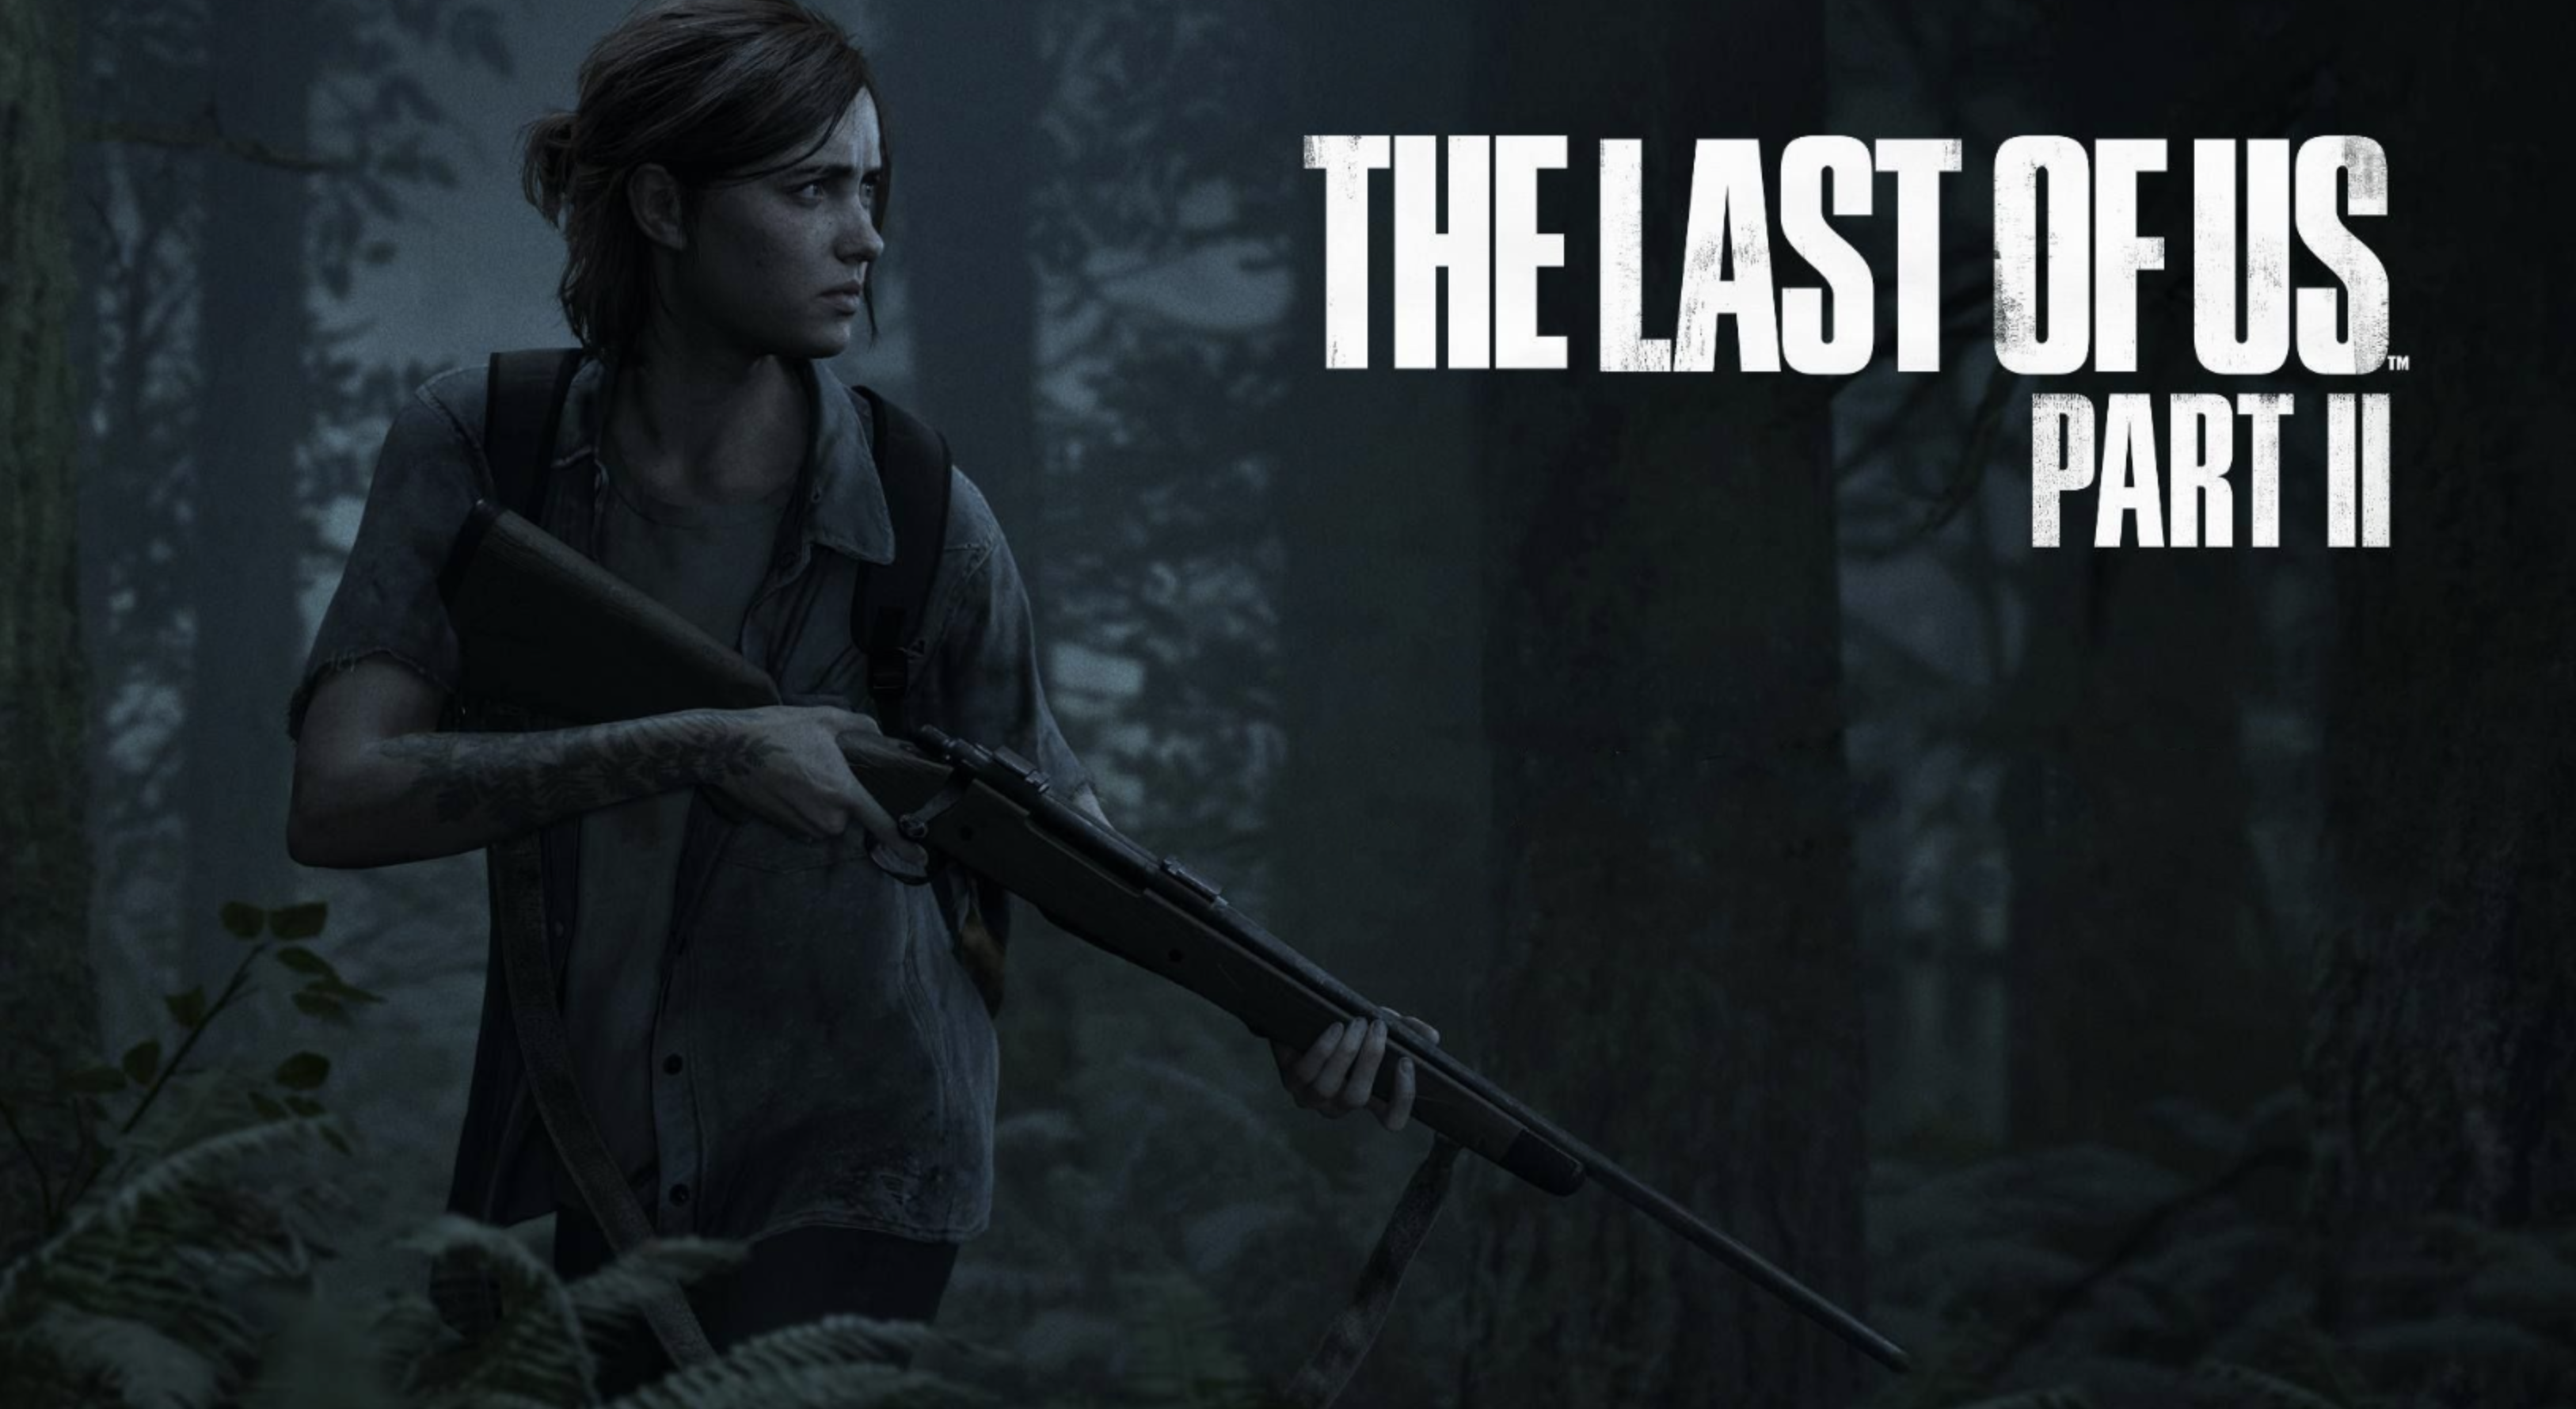 download I Edited The Last of Us 2s Reveal Thumbnail into a 3253x1779